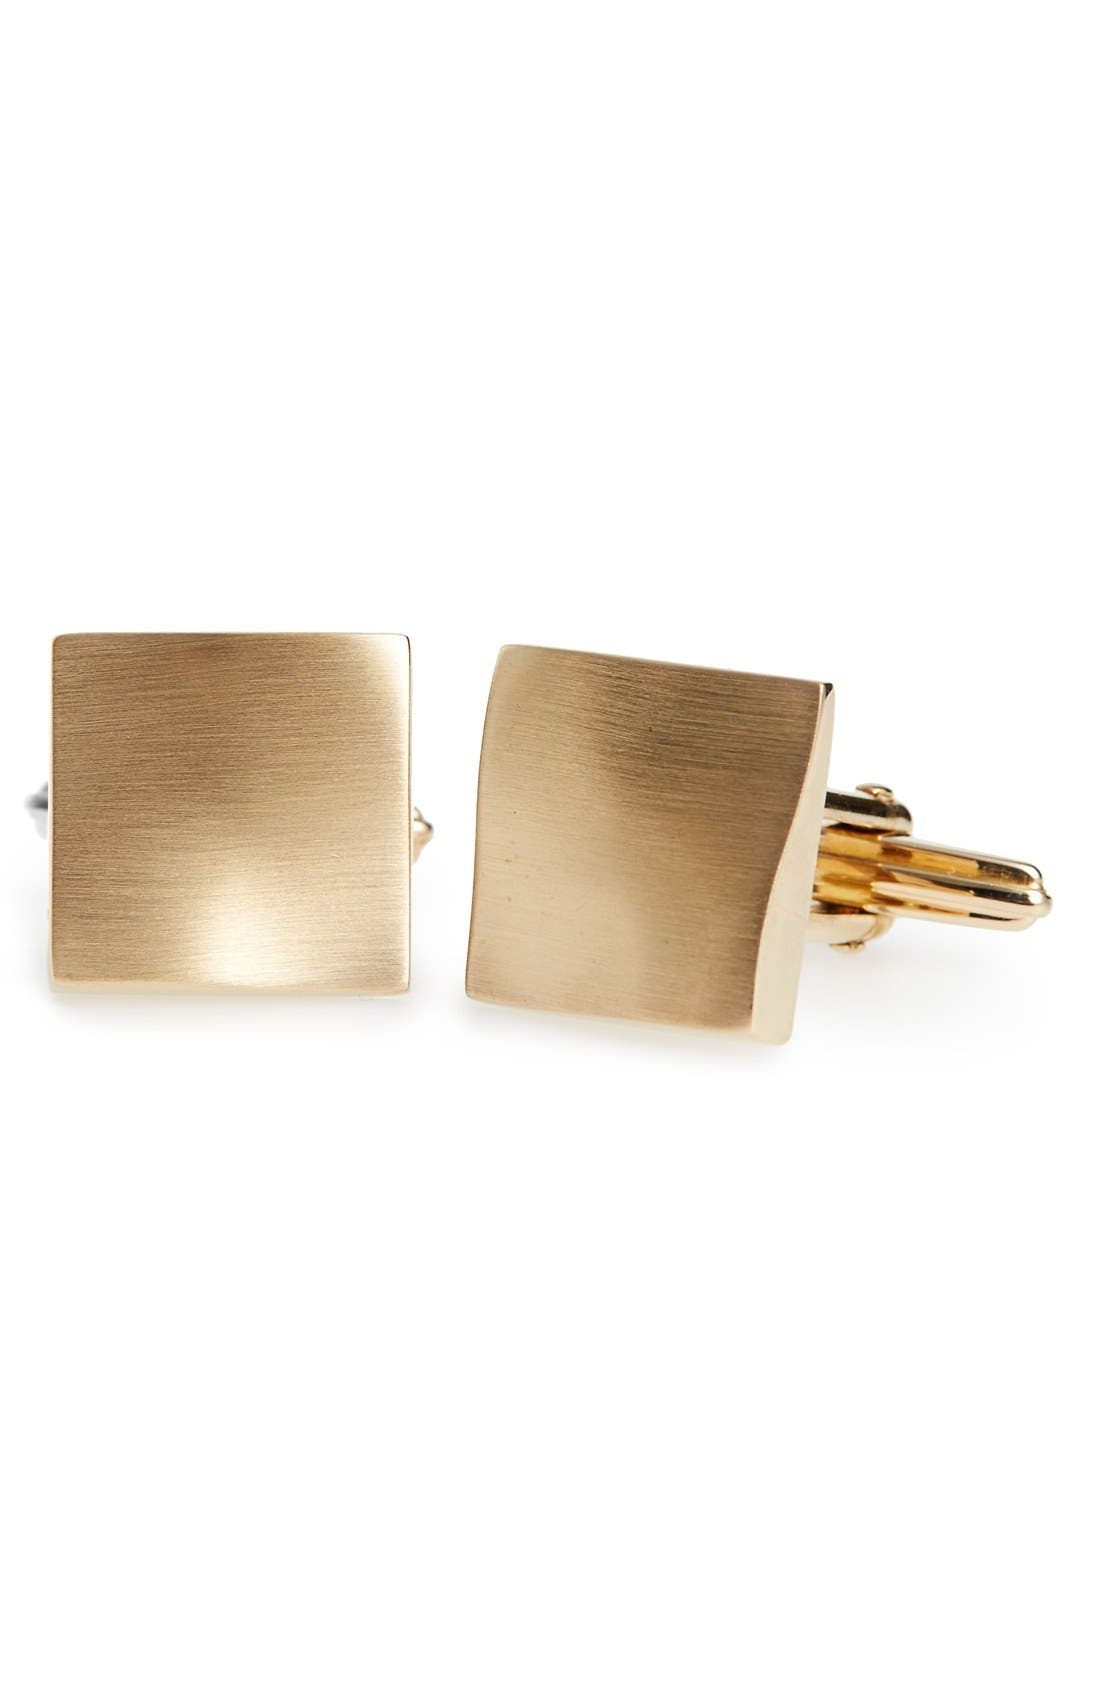 Lanvin 'Twisted Plaque' Square Cuff Links